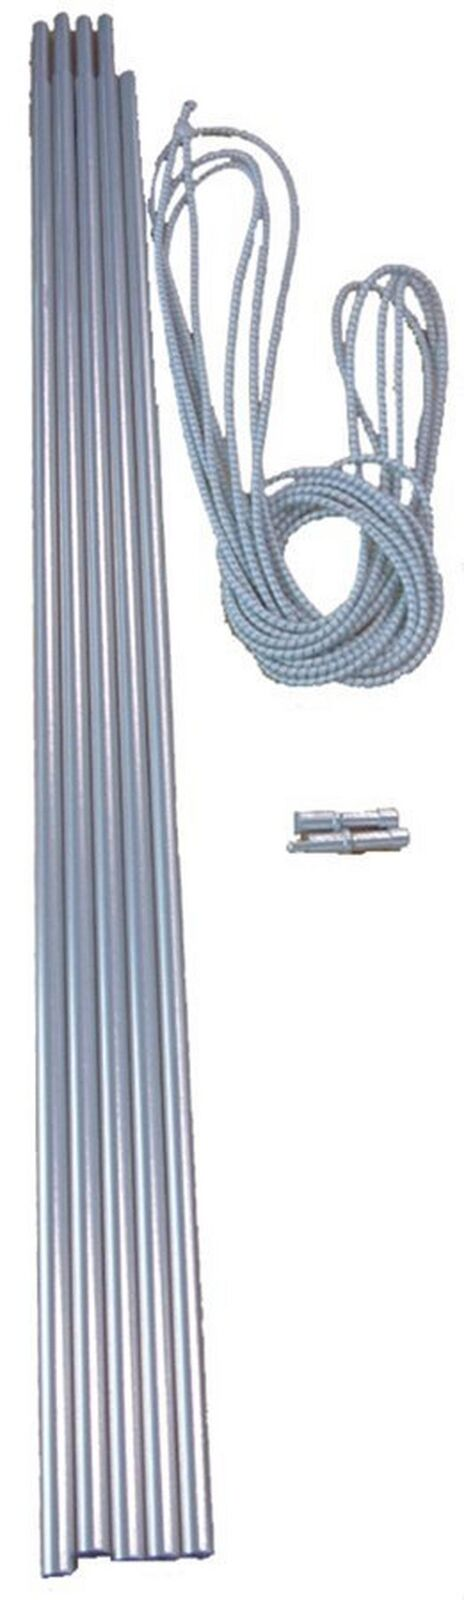 Neuf Vango Alliage Corded 9.5mm Tente Polaire Set Camping Camping Camping Equipment Argent eb7f79